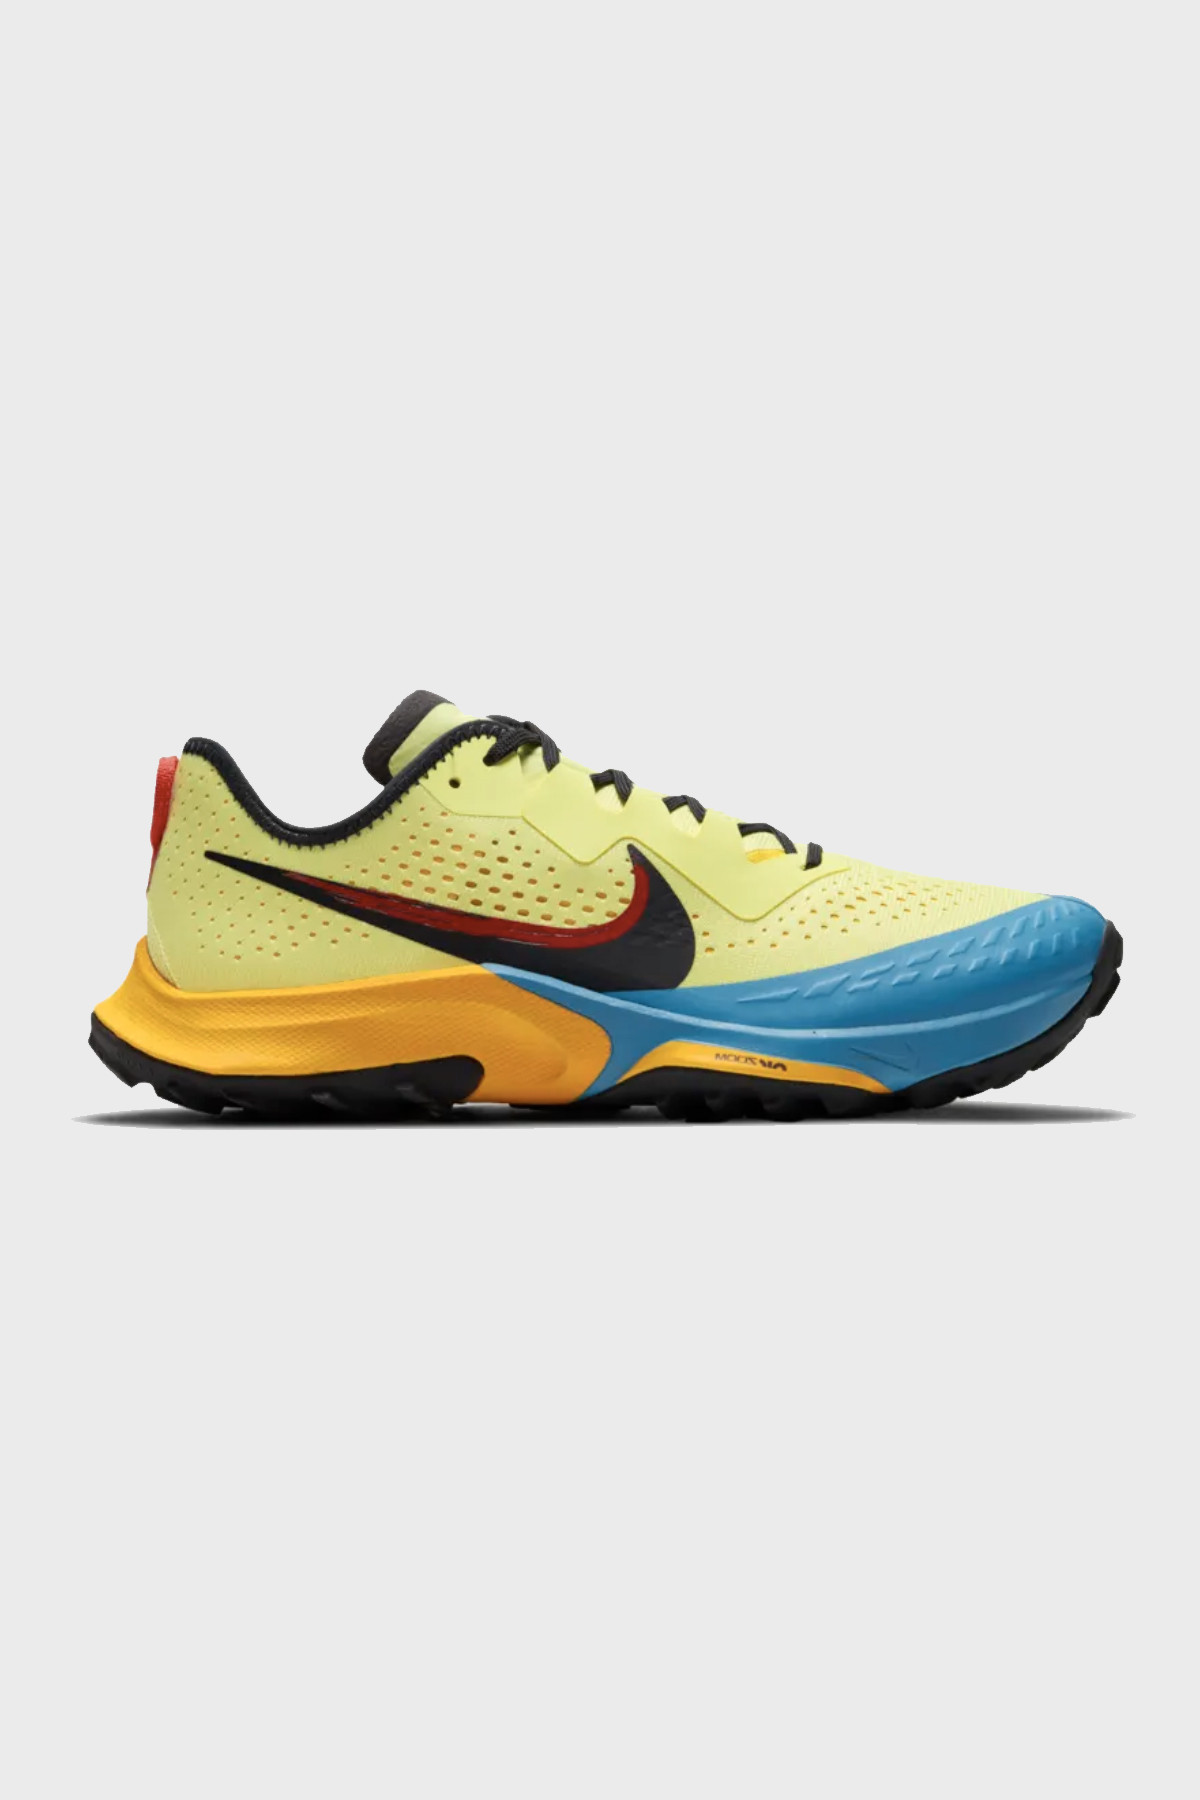 NIKE TRAIL - AIR ZOOM TERRA KIGER 7 - LIMELIGHT LASER BLUE